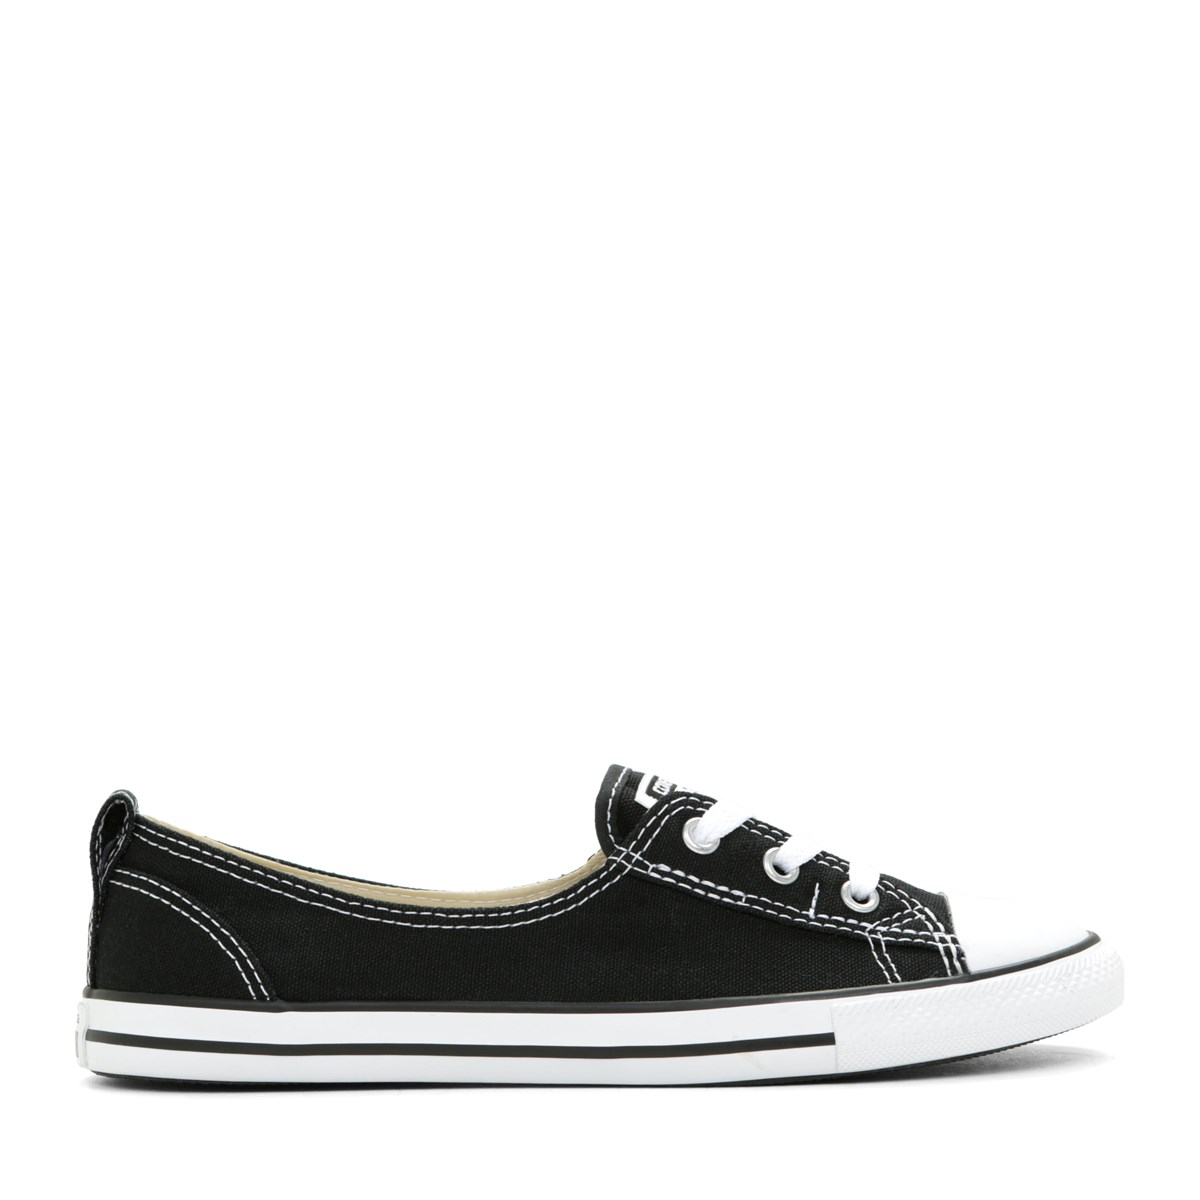 Women's Chuck Taylor All Star Canvas Ballet Slip-On Sneaker